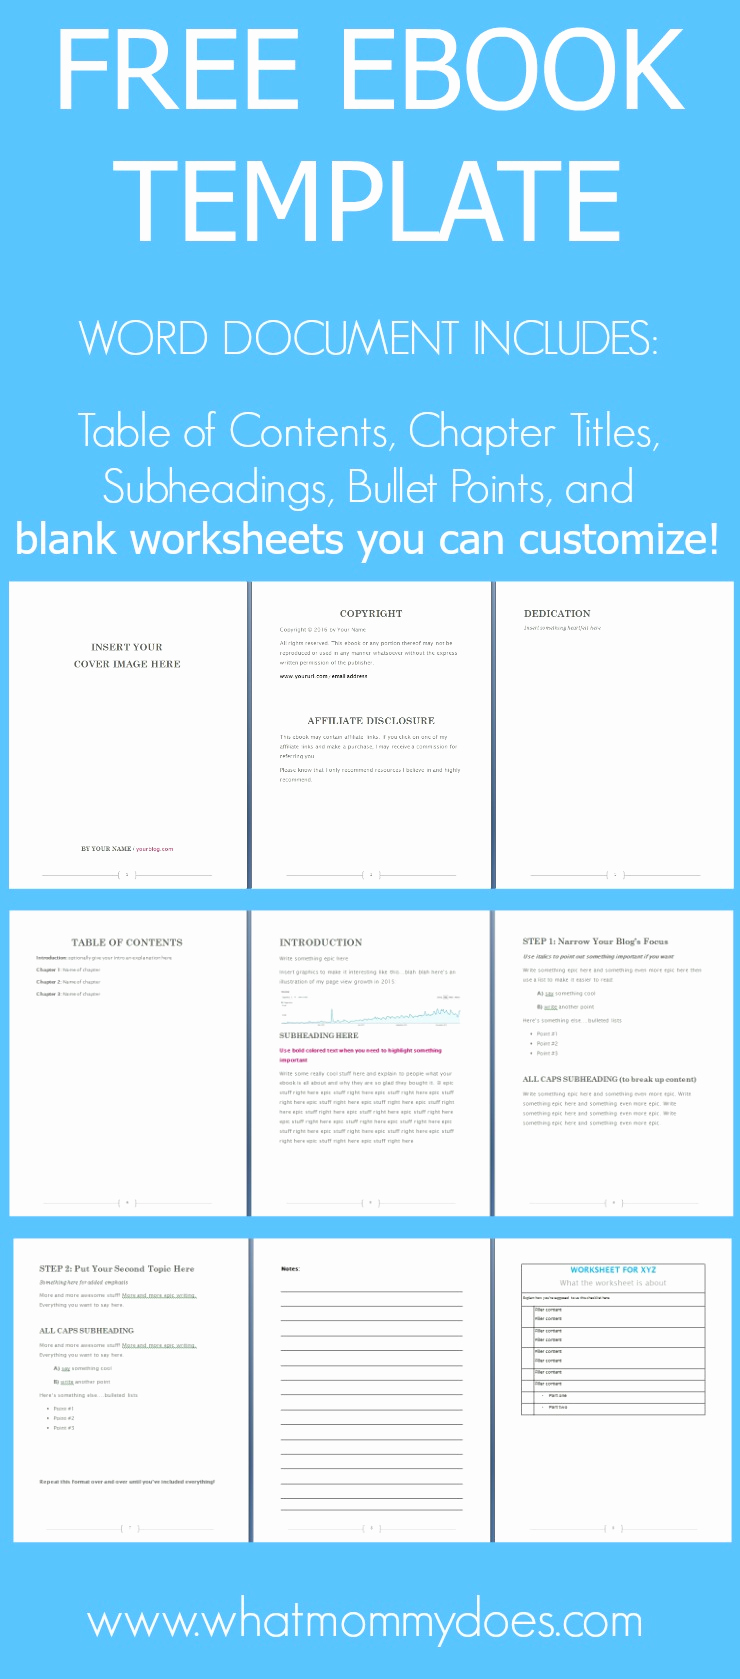 Free Microsoft Word Templates Best Of Free Ebook Template Preformatted Word Document What